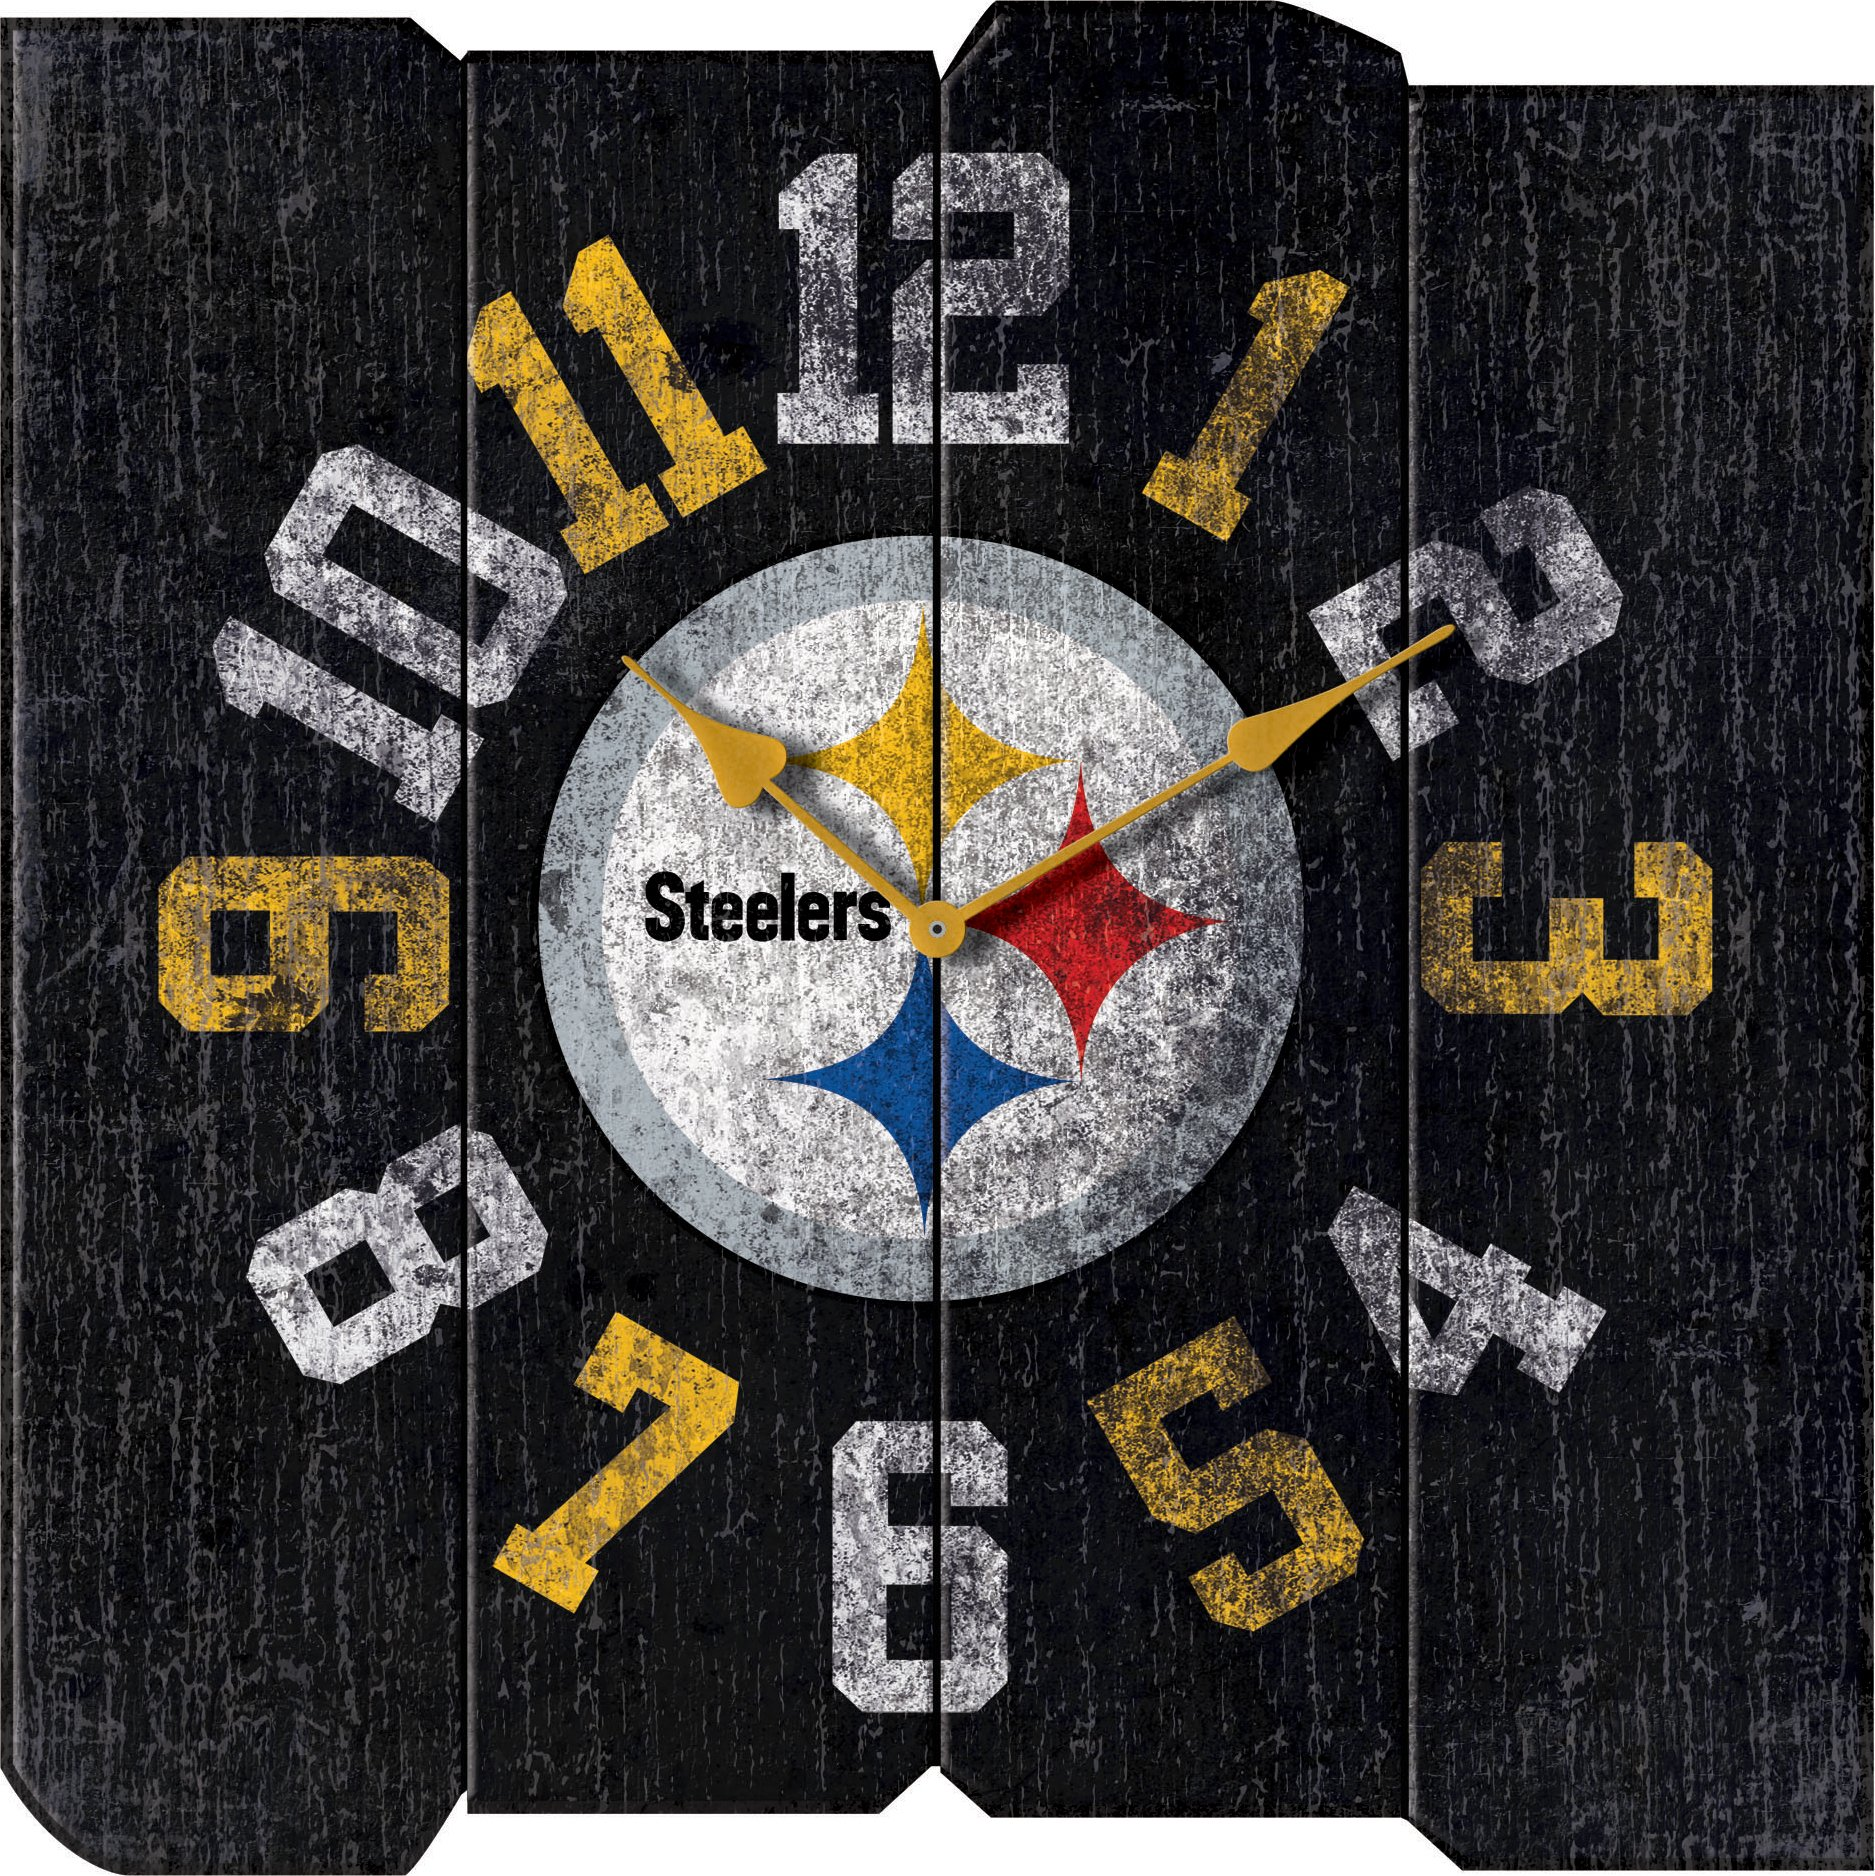 Imperial Officially Licensed NFL Merchandise: Vintage Square Clock, Pittsburgh Steelers by Imperial